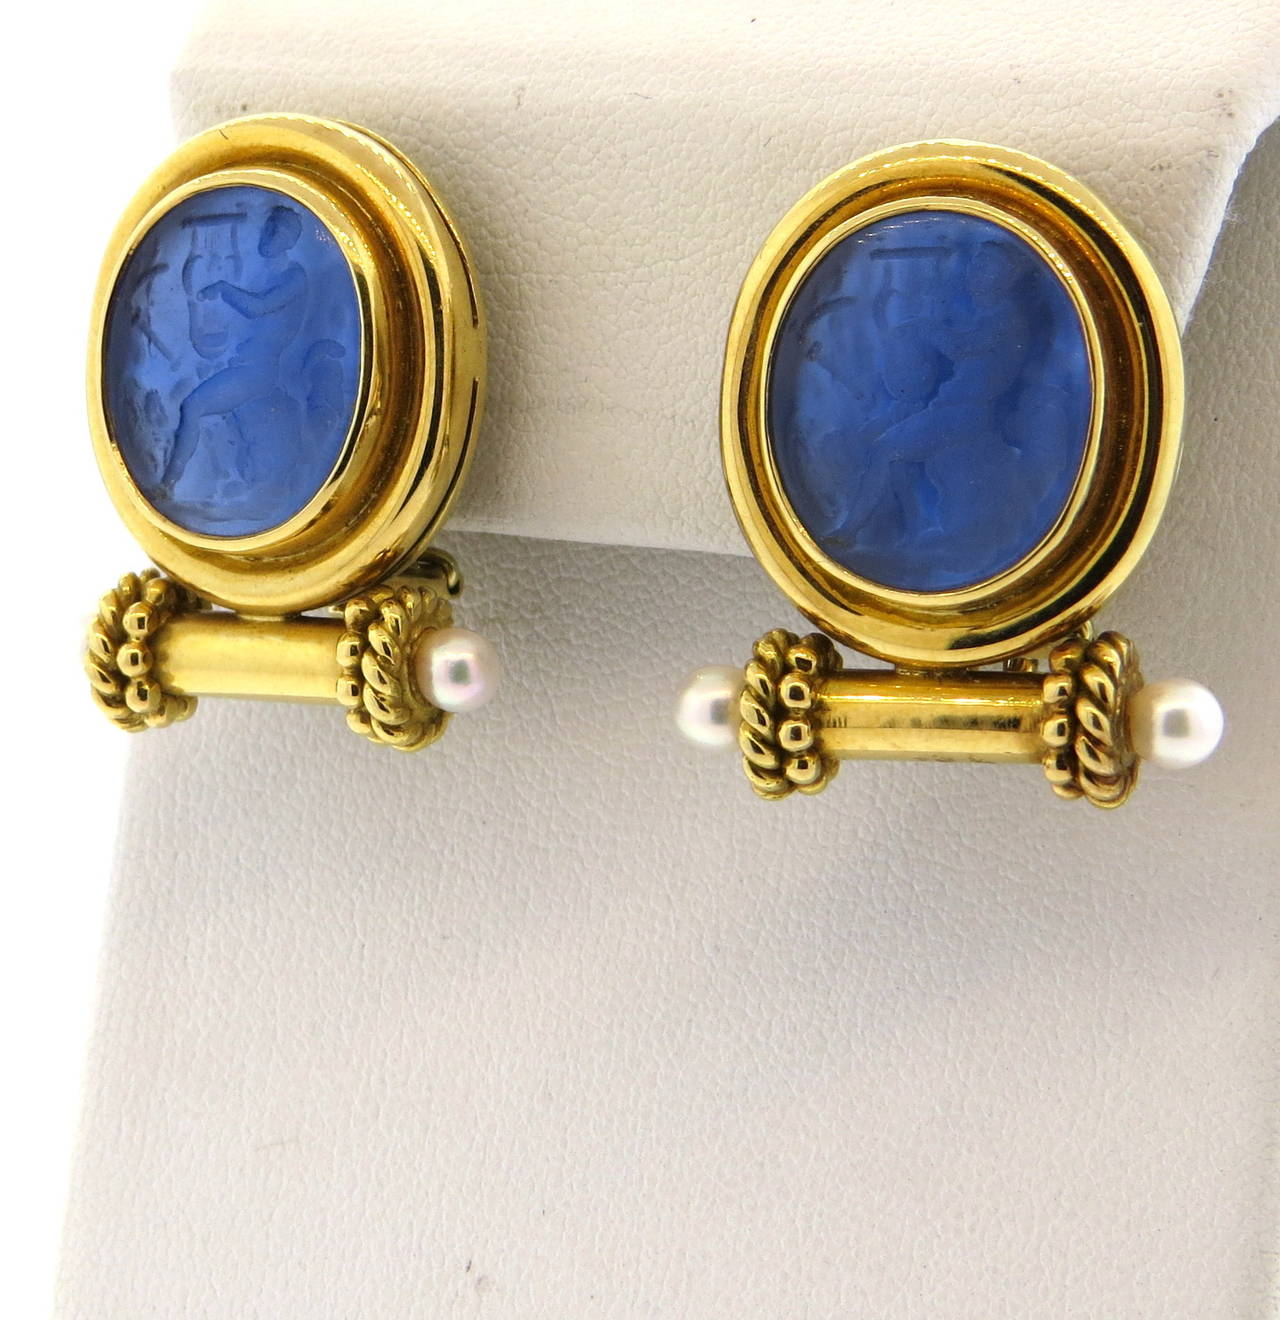 Elizabeth Locke Intaglio Venetian Glass Pearl Gold Earrings